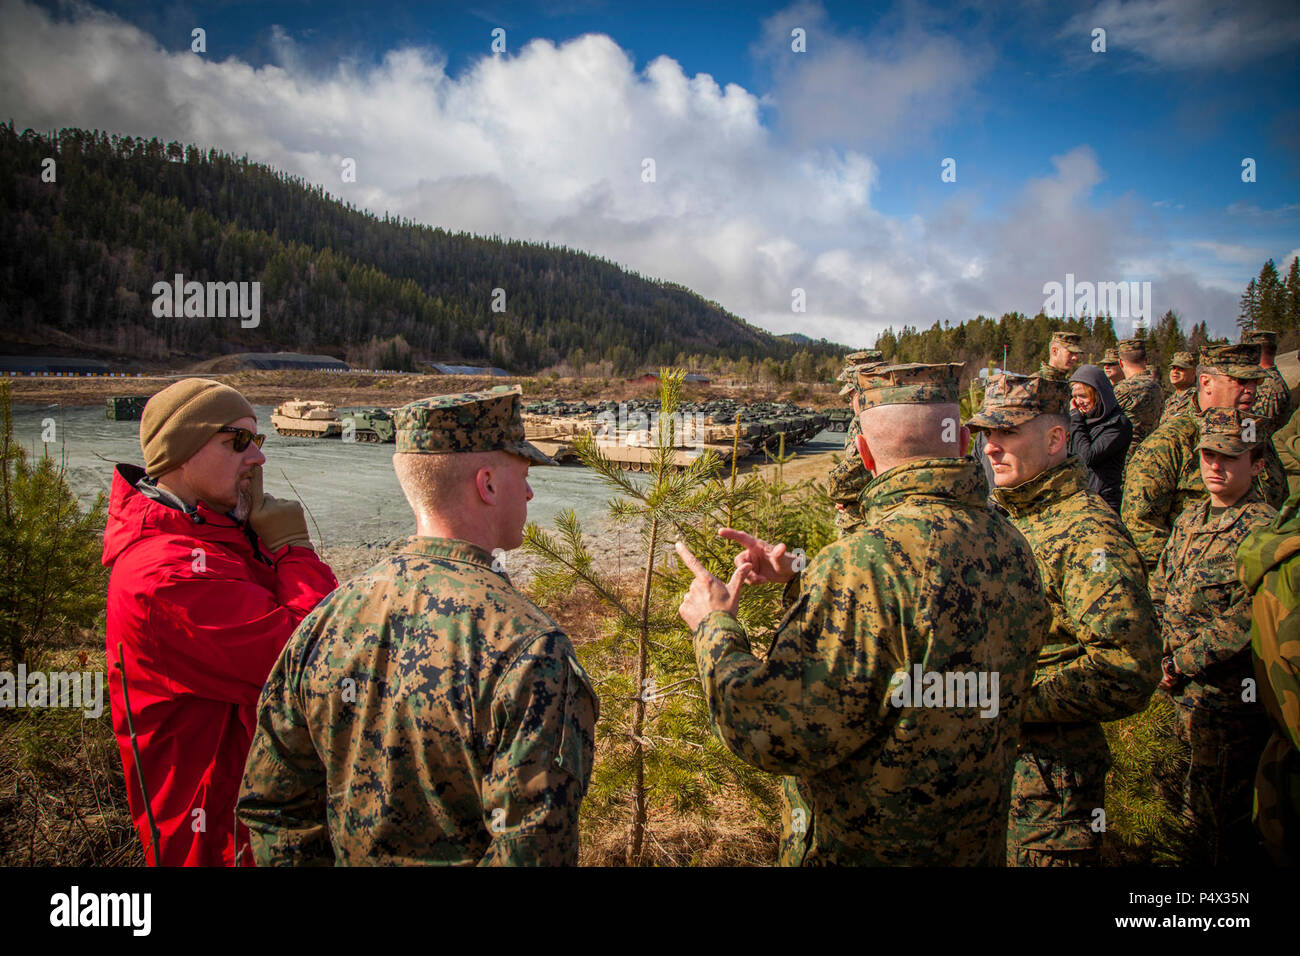 Lt. Gen. John Wissler, center, commander of U.S. Marine Corps Forces Command, speaks with Marines while overlooking an assembly area where Marine Corps Prepositioning Program Norway (MCPP-N) equipment is staged.  MCPP-N enables the rapid aggregation of a credible, agile, and flexible Marine Air Ground Task Force and creates operational and strategic options for the defense of NATO allies and partners. Stock Photo